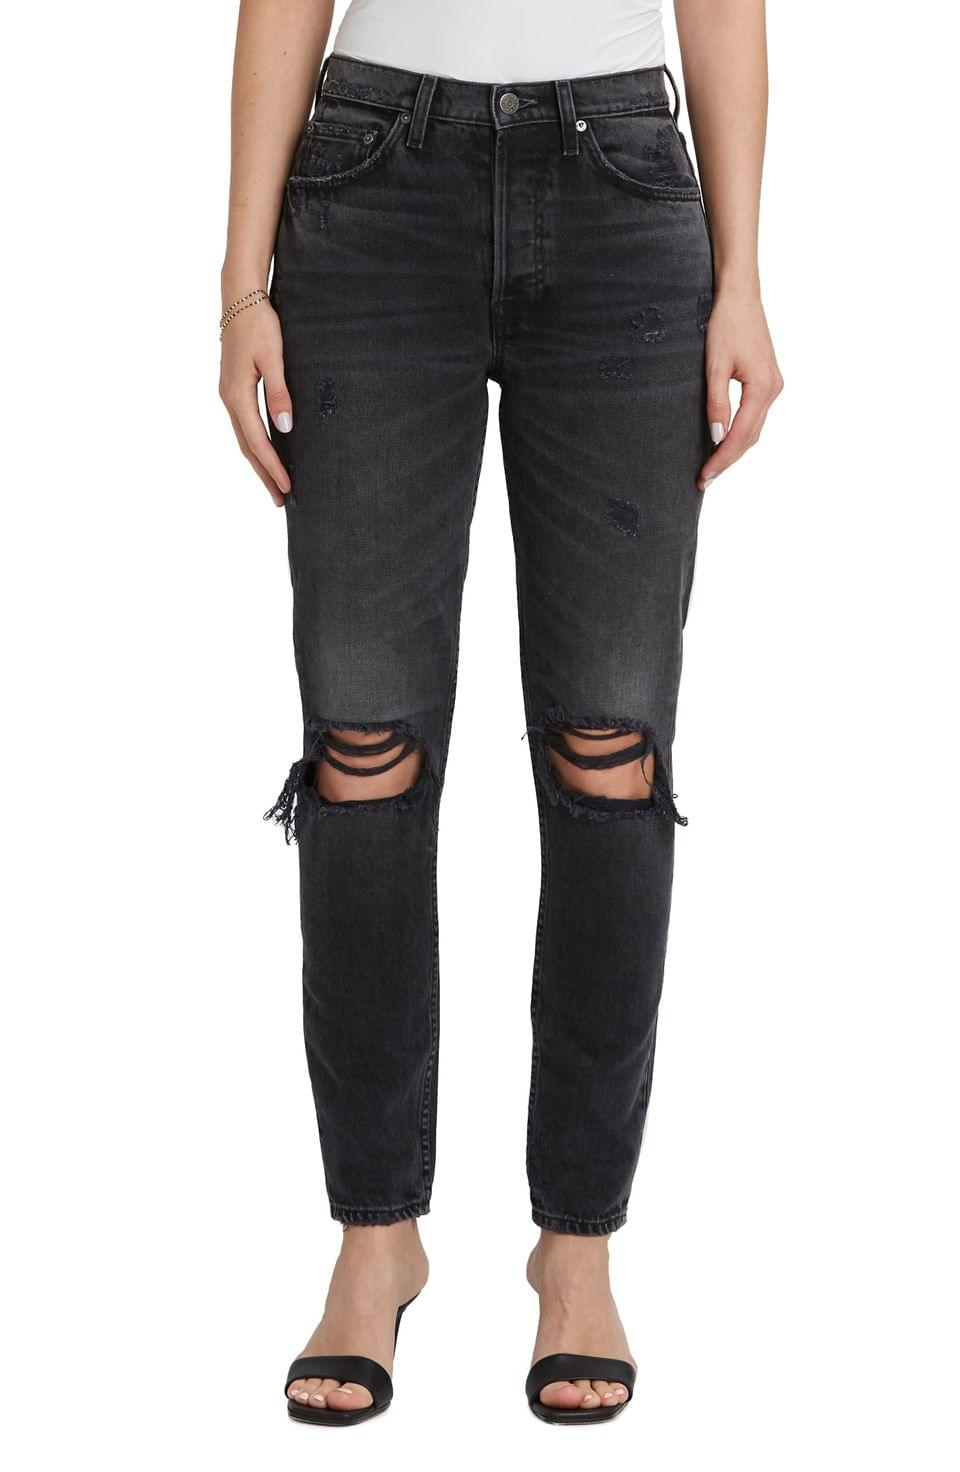 Women's Boyish Jeans The Billy Ripped High Waist Ankle Skinny Jeans (Touch of Evil)